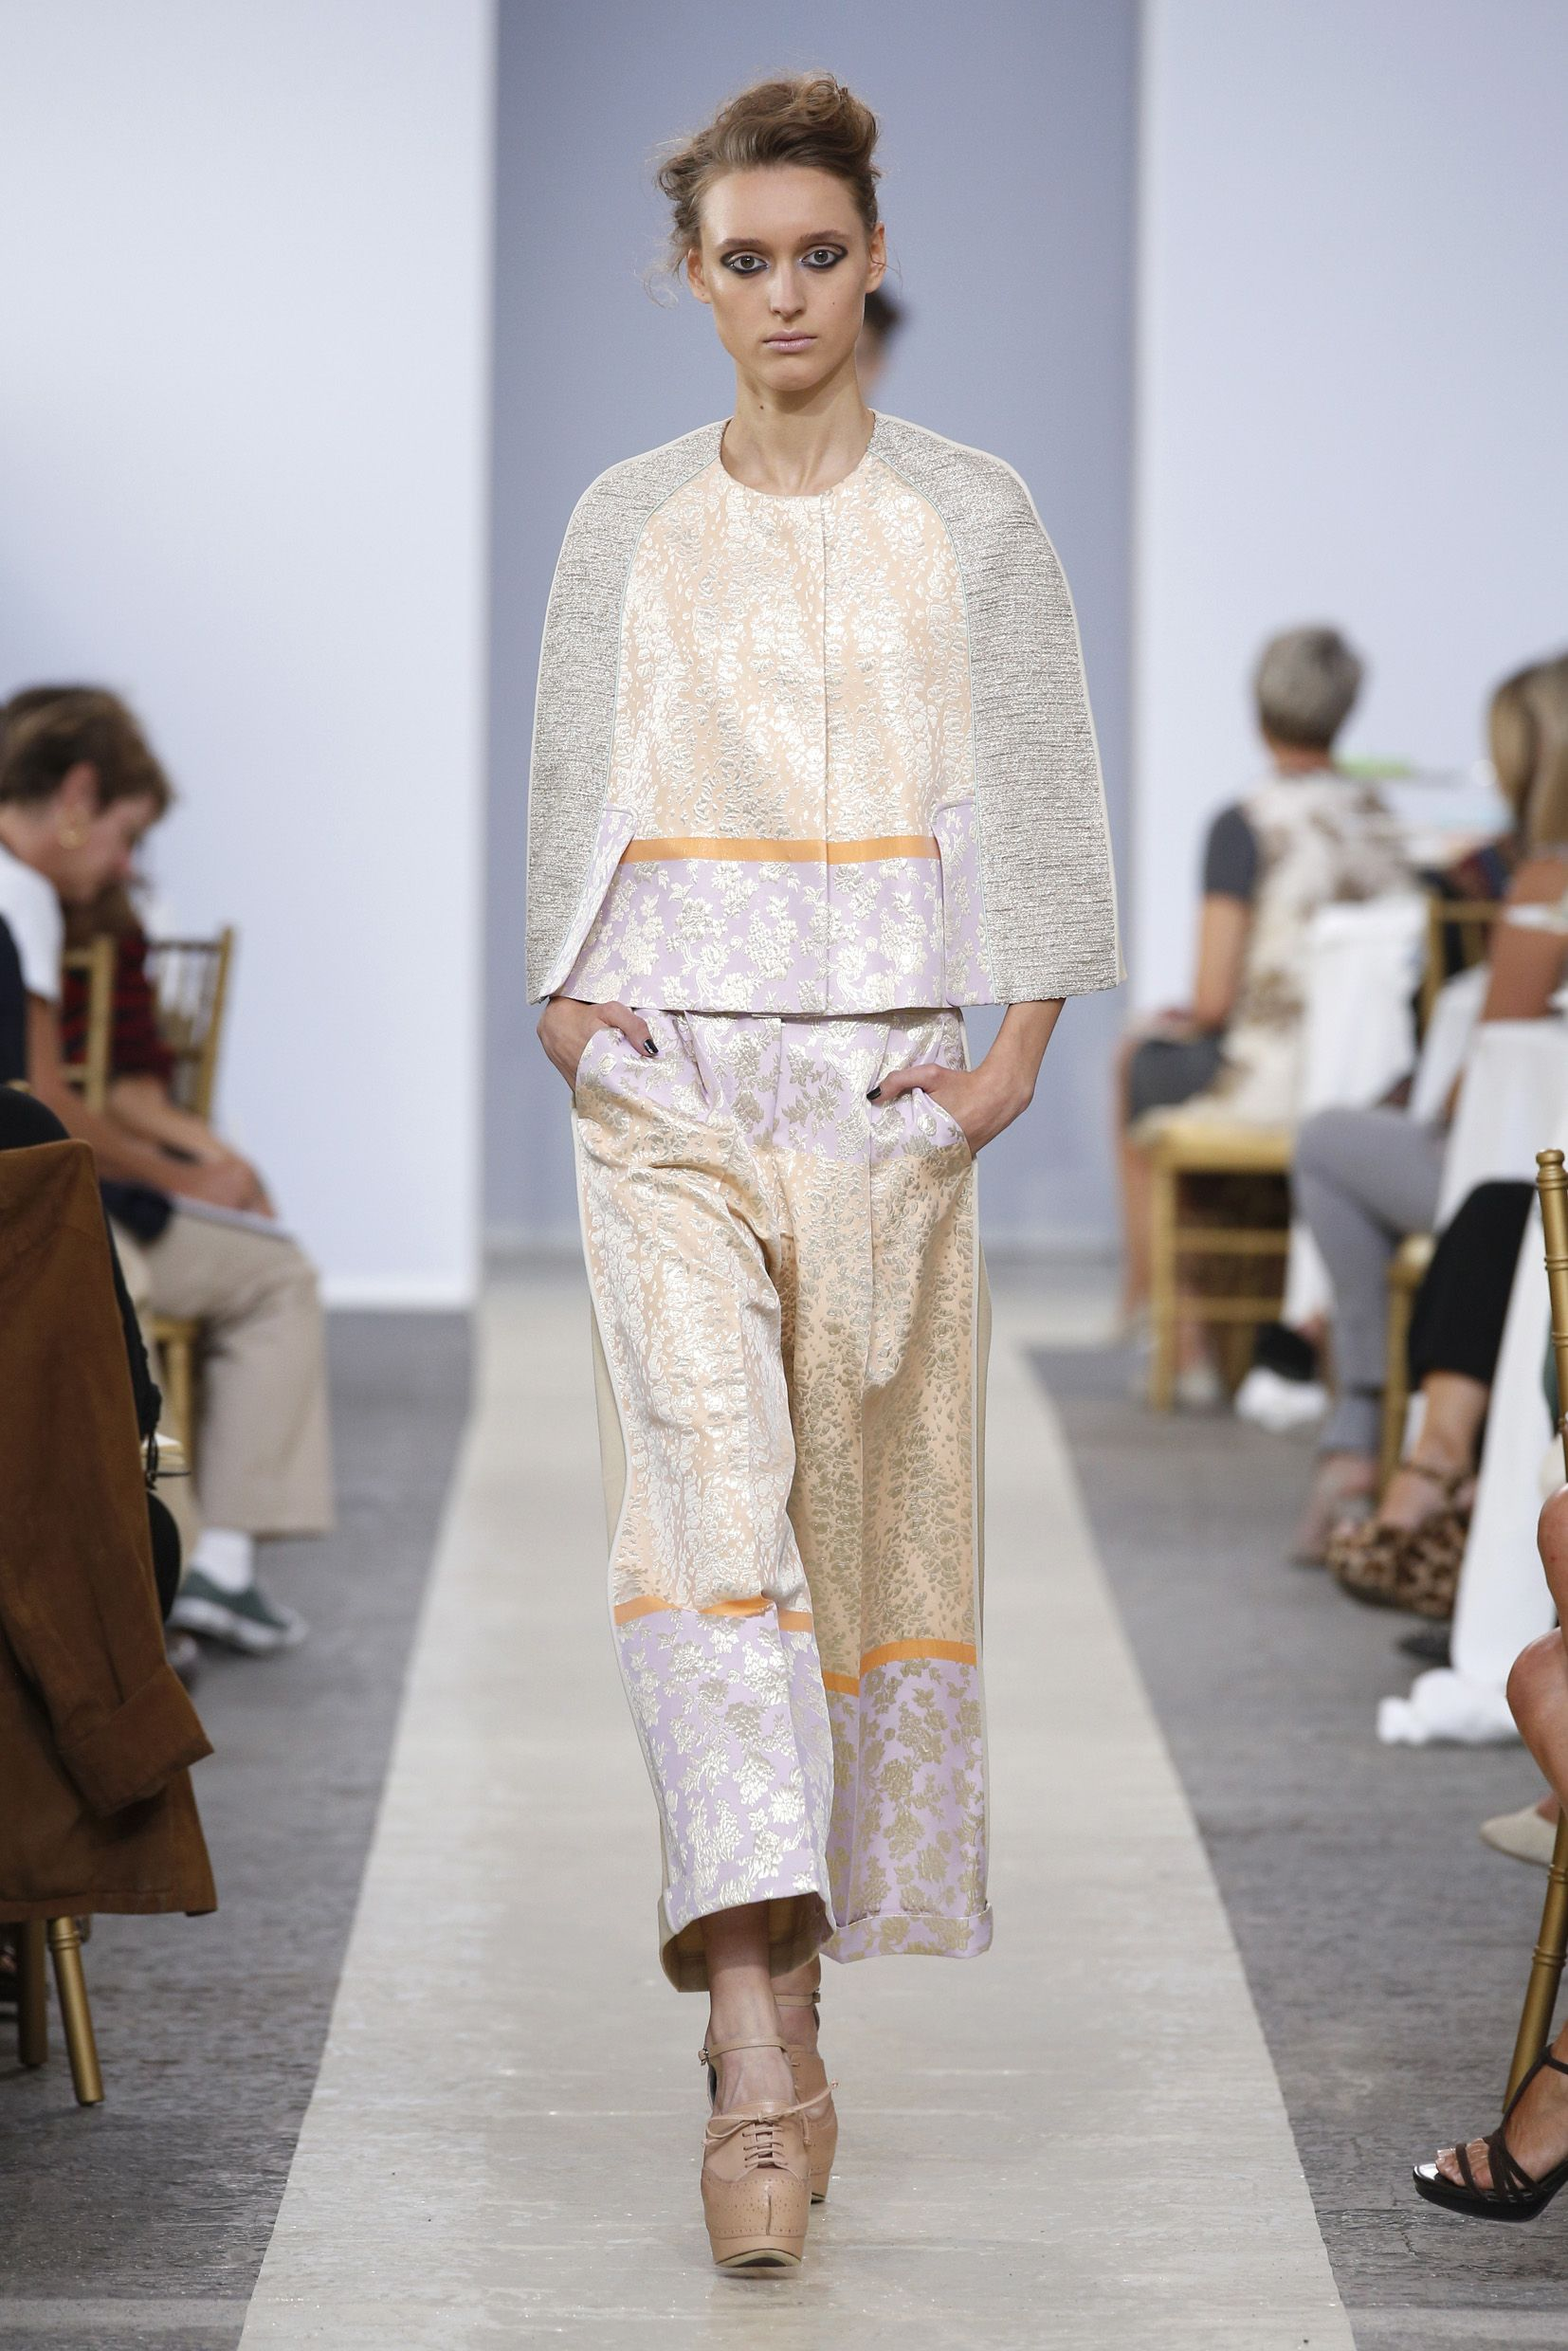 Spring/Summer 2013 Antonio Marras Main Collection